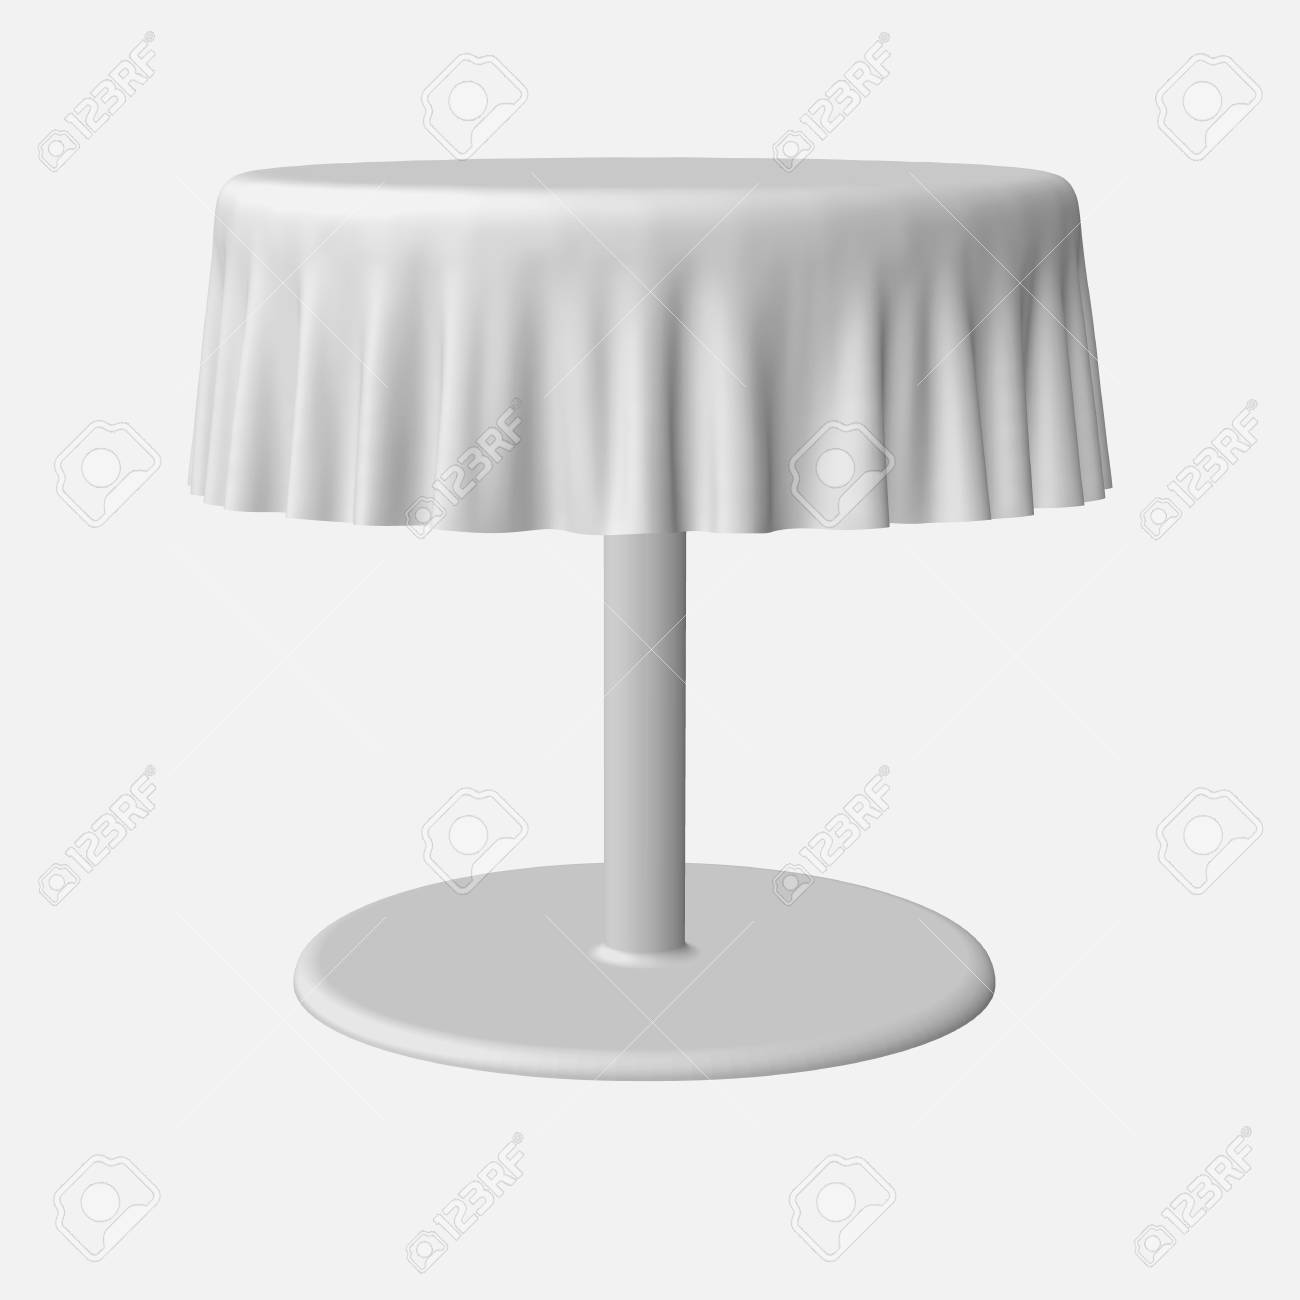 Round Table With Tablecloth.Eps10 Isolated Blank Round Table With Tablecloth In White Color